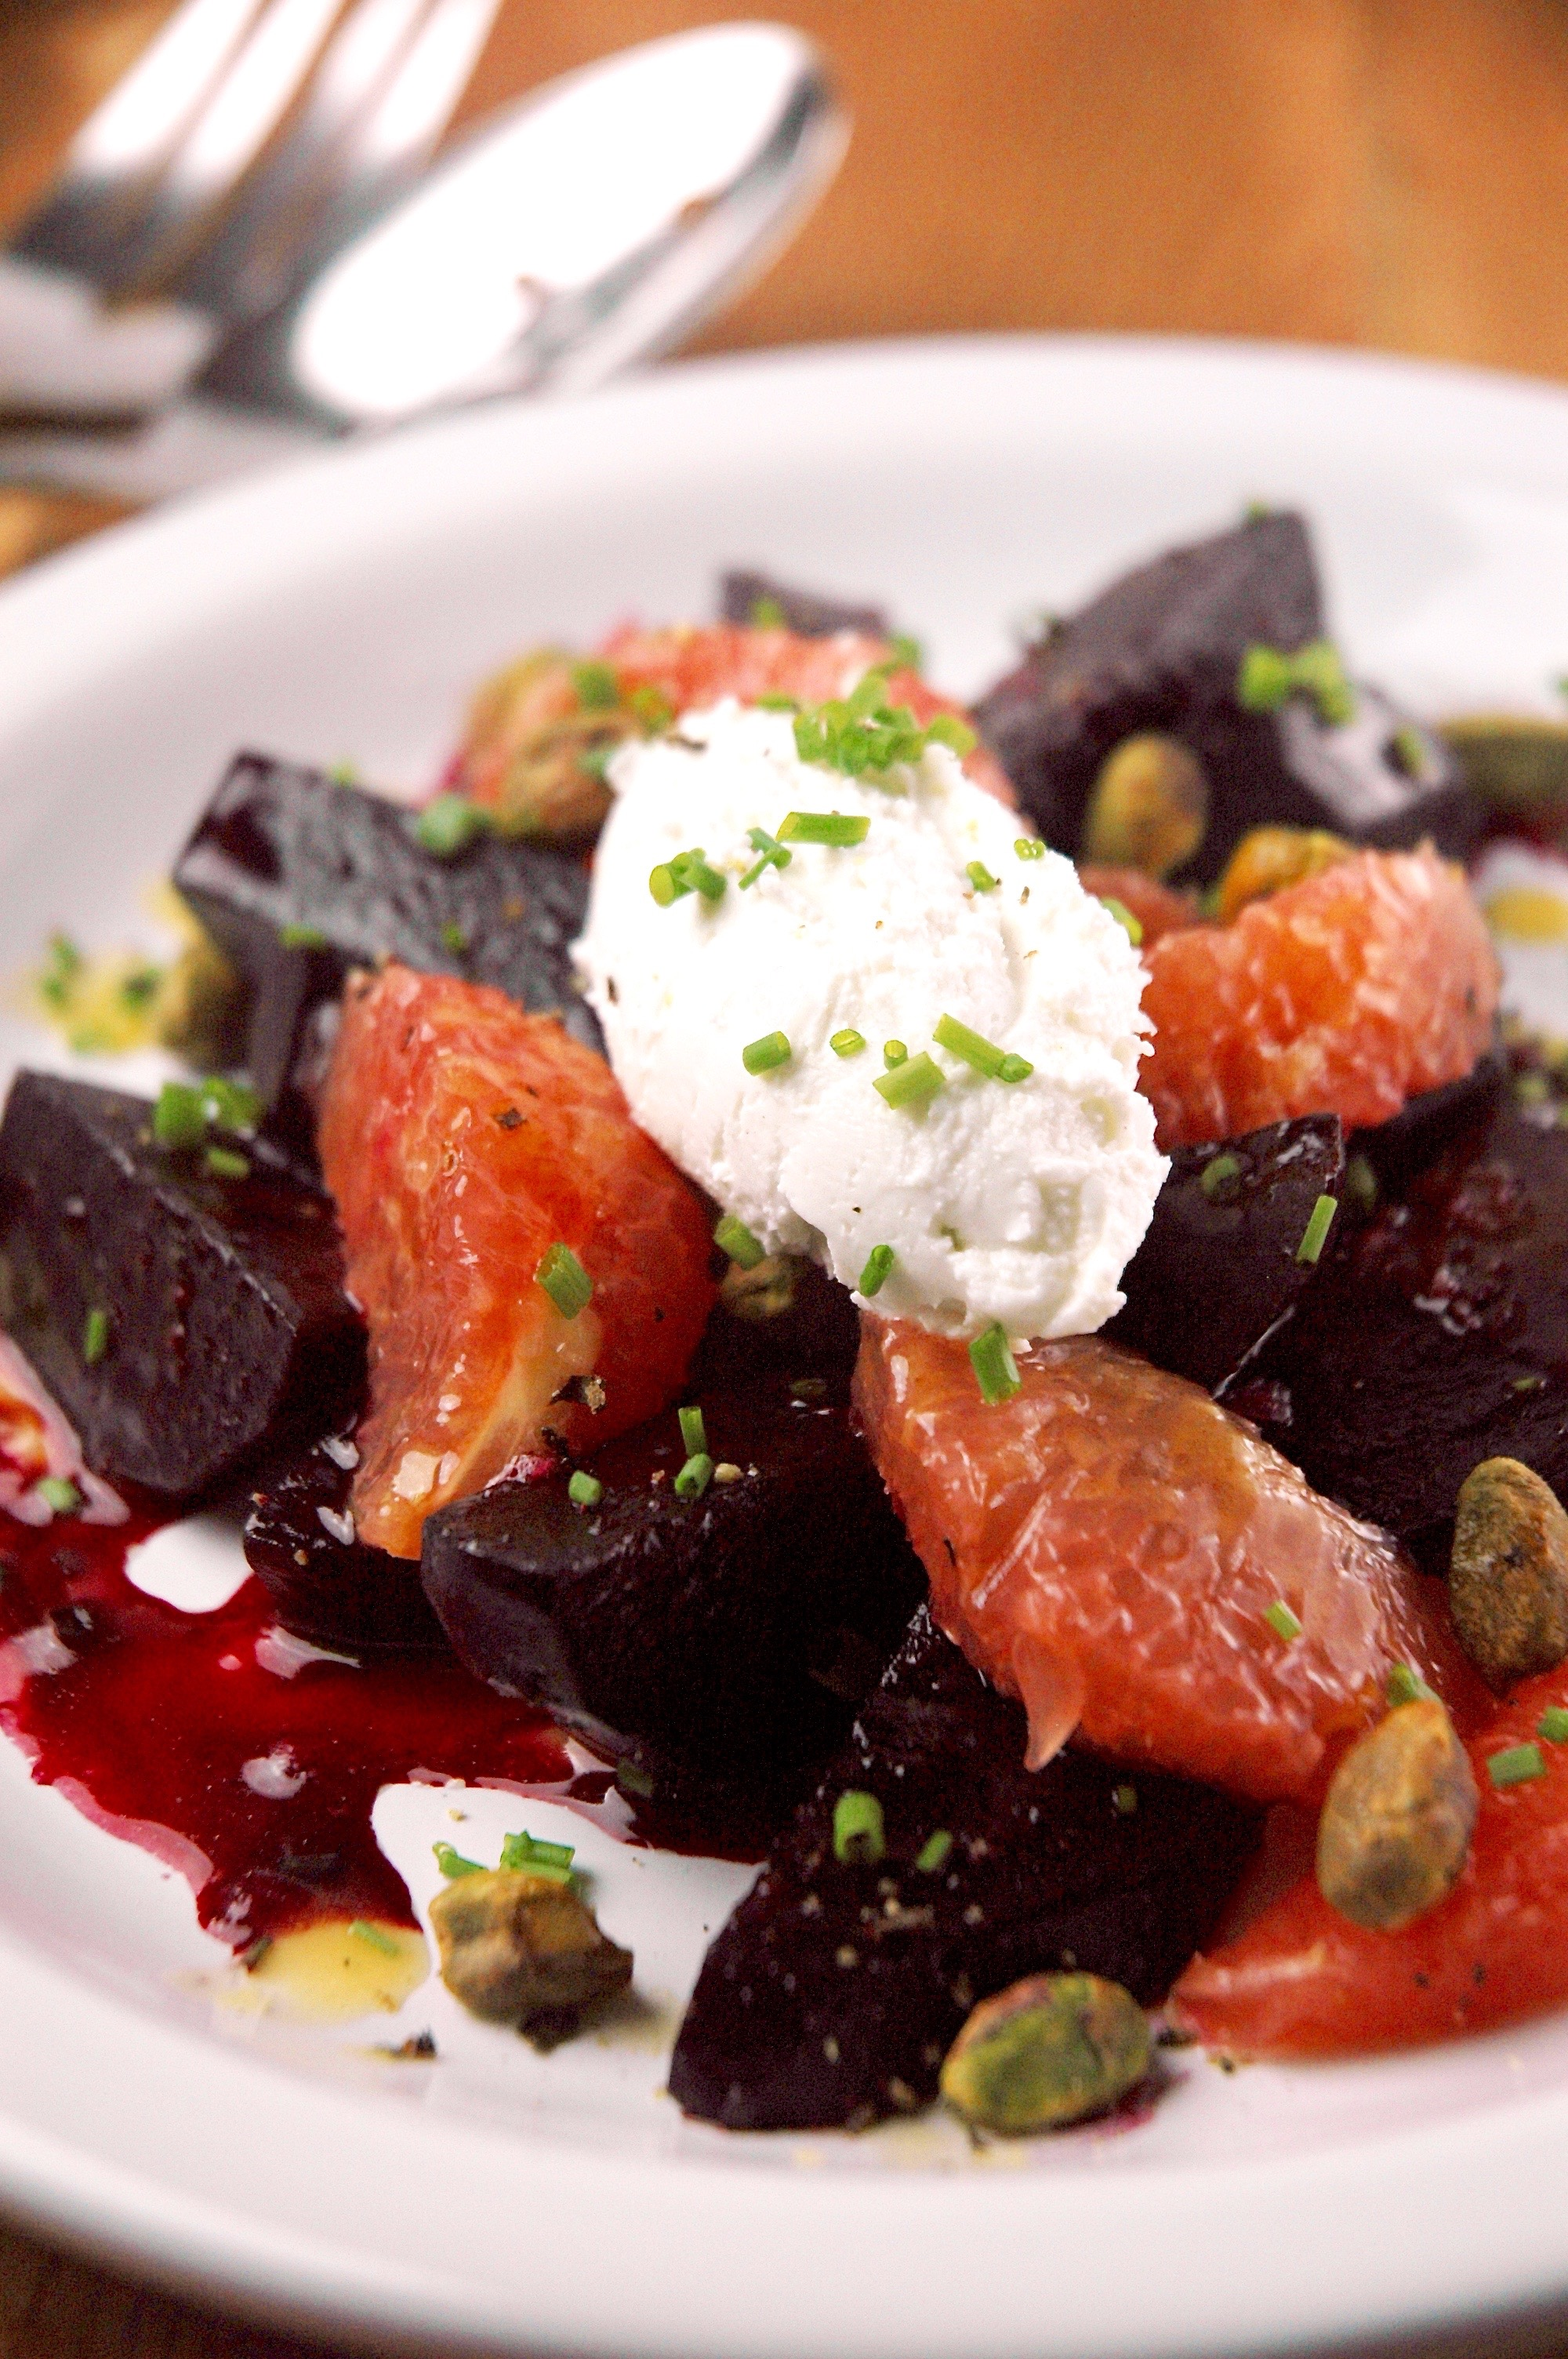 Roasted Beet Salad with Goat Cheese Mousse and Ginger Vinaigrette